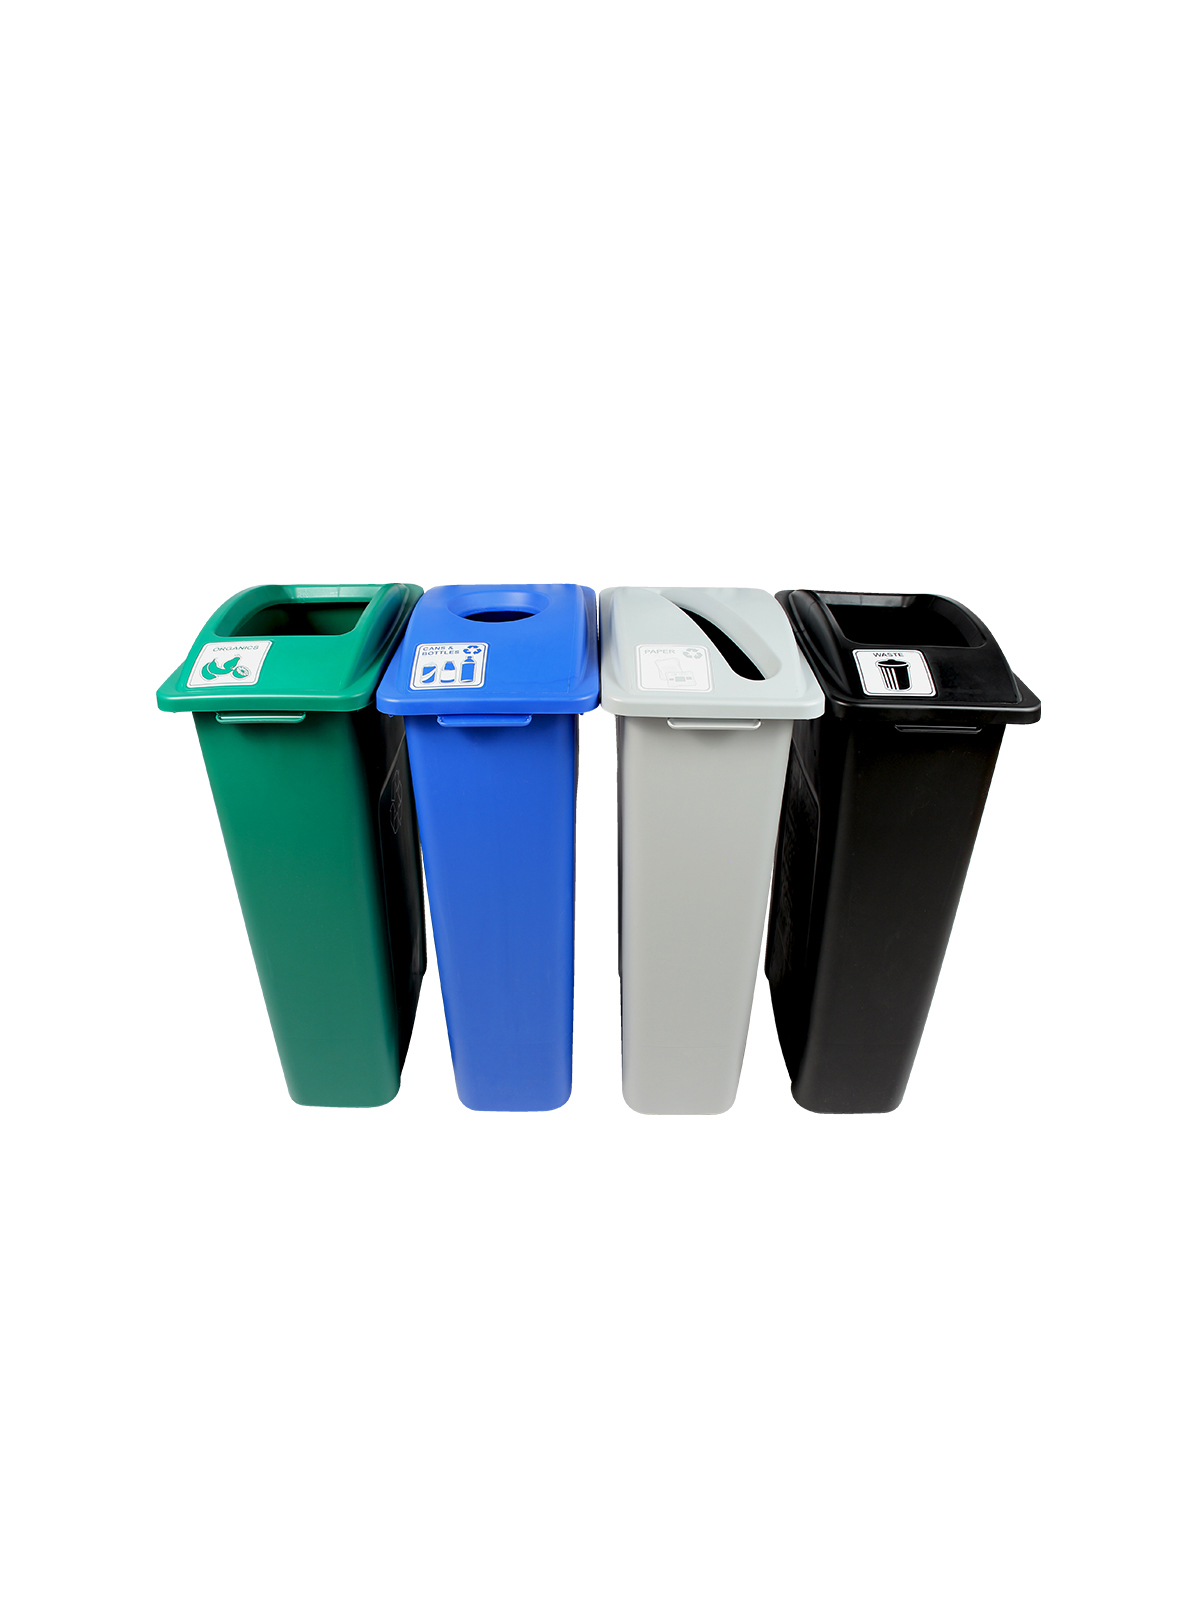 WASTE WATCHER - Quad - Cans & Bottles-Papers-Organics-Waste - Circle-Slot-Full - Blue-Grey-Green-Black